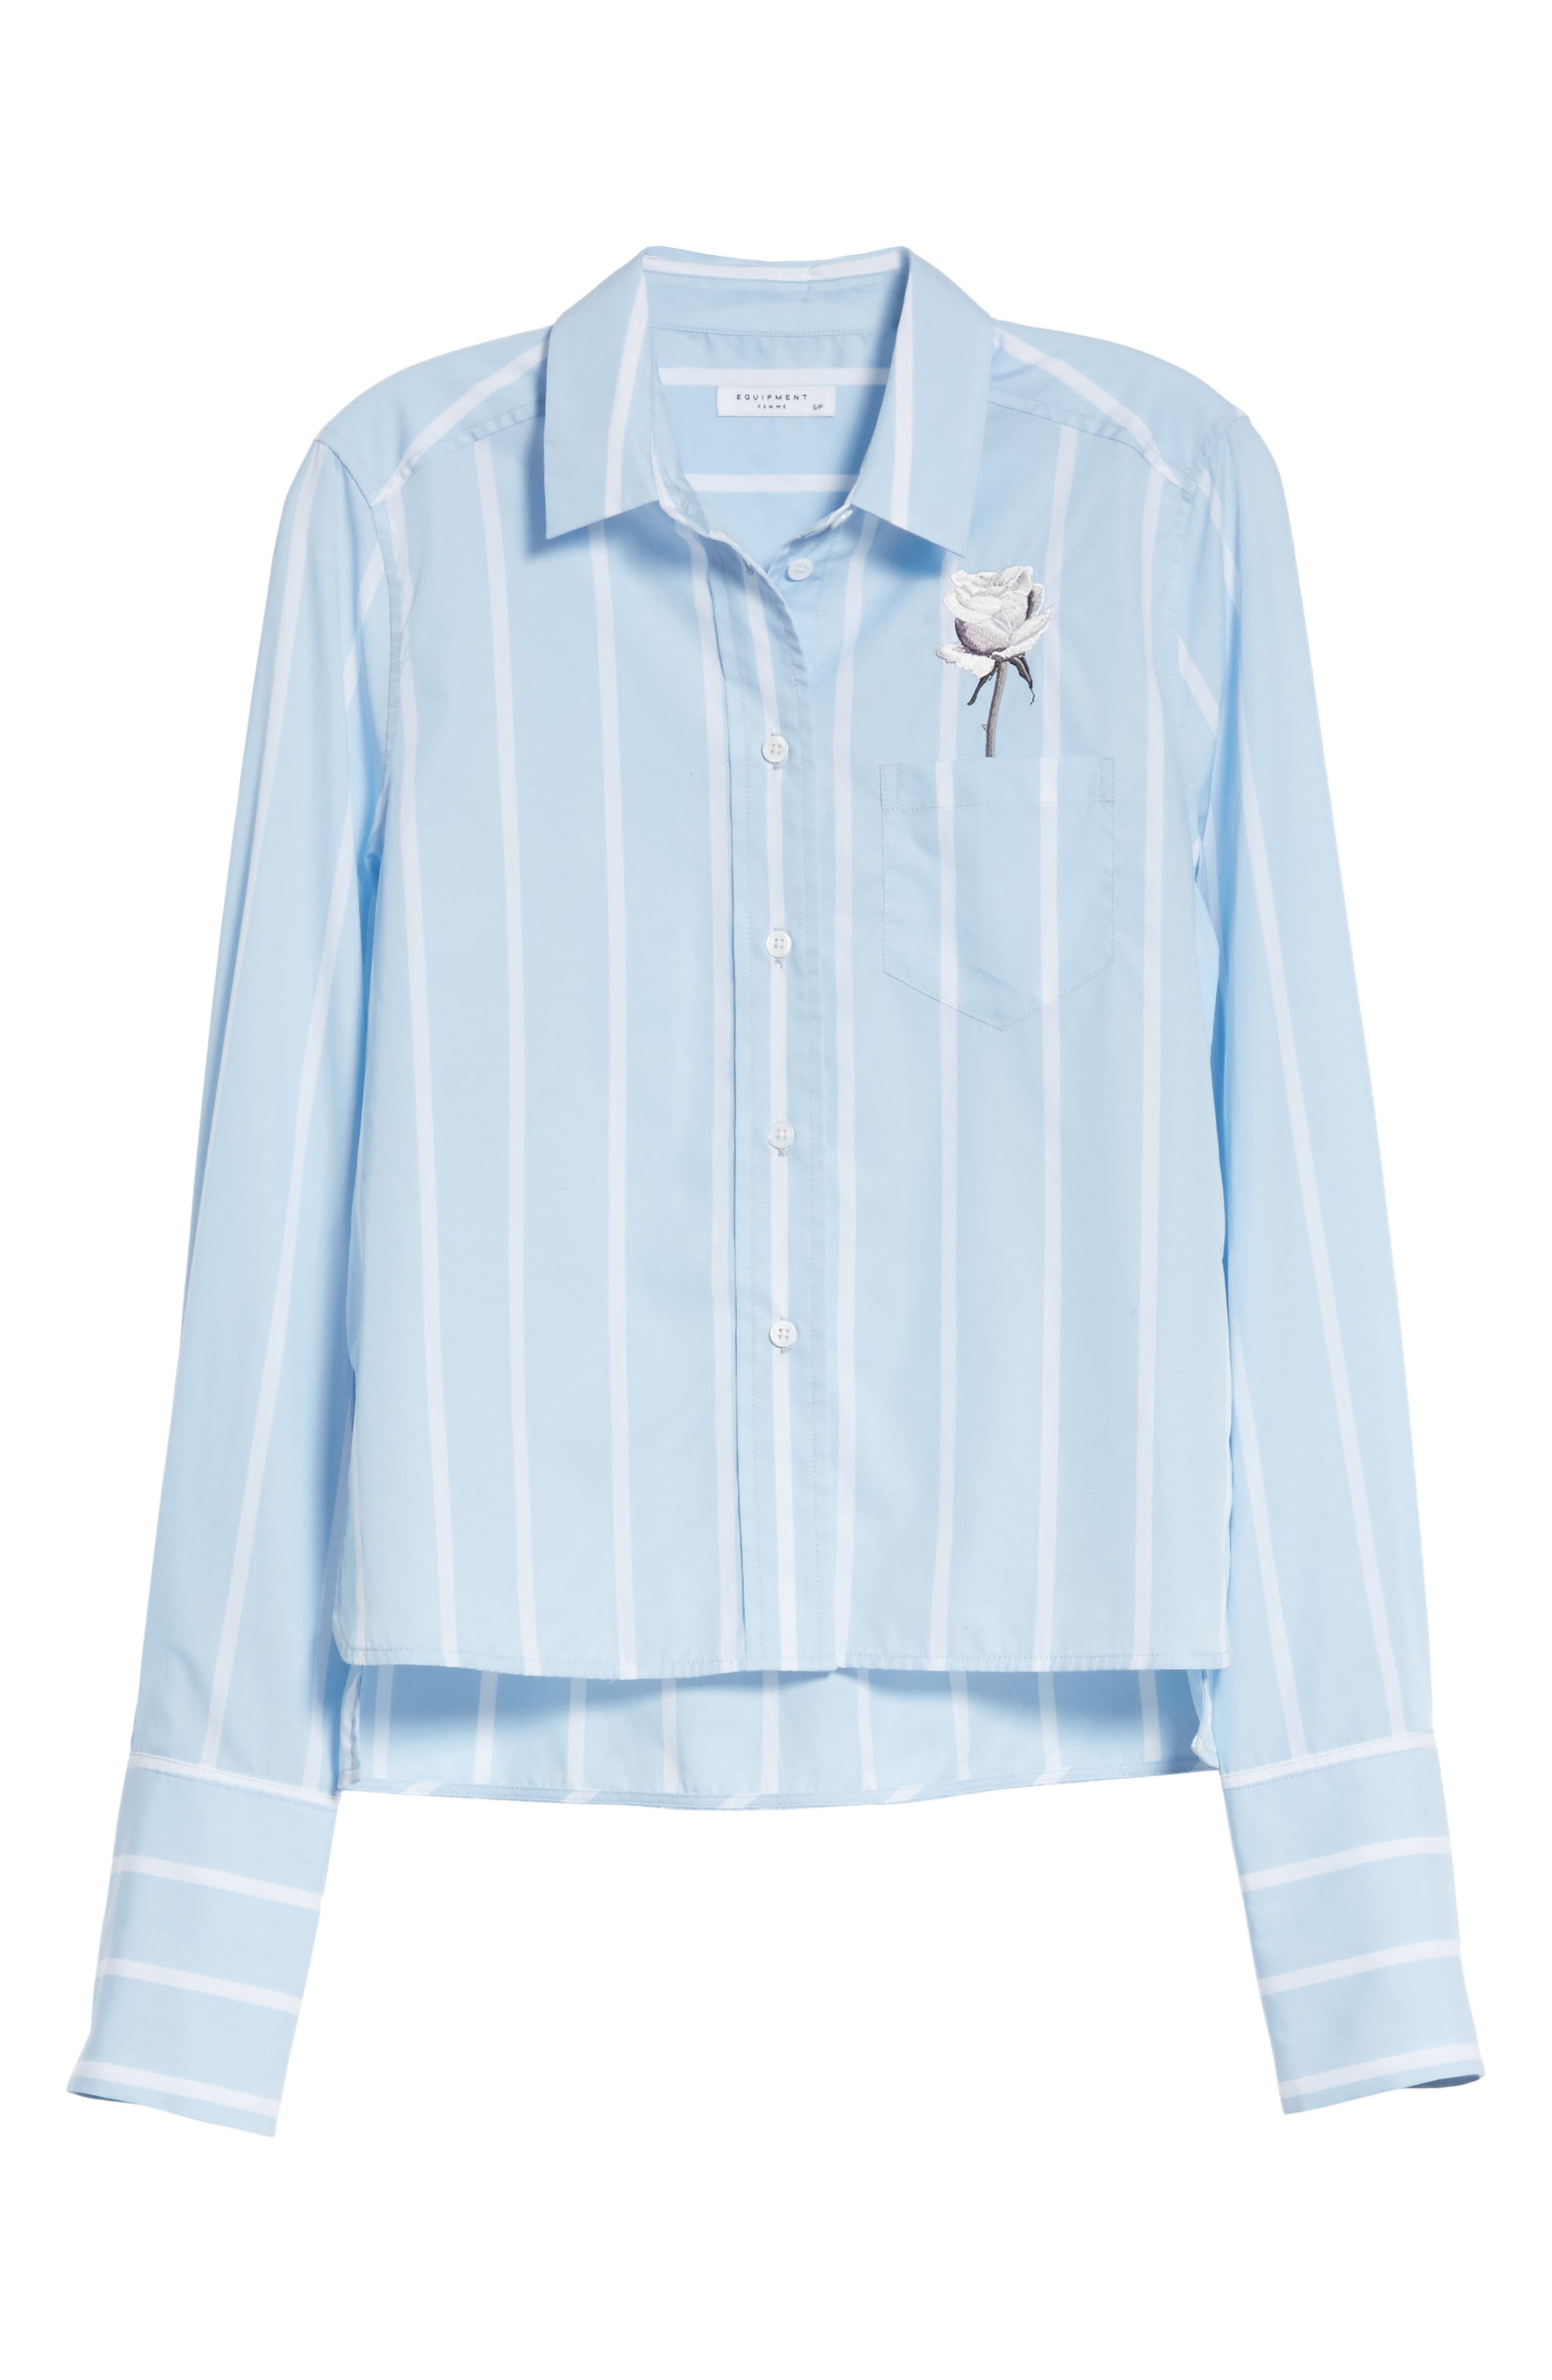 Huntley Embroidered Stripe Cotton Shirt,                             Alternate thumbnail 6, color,                             Skylight / Bright White